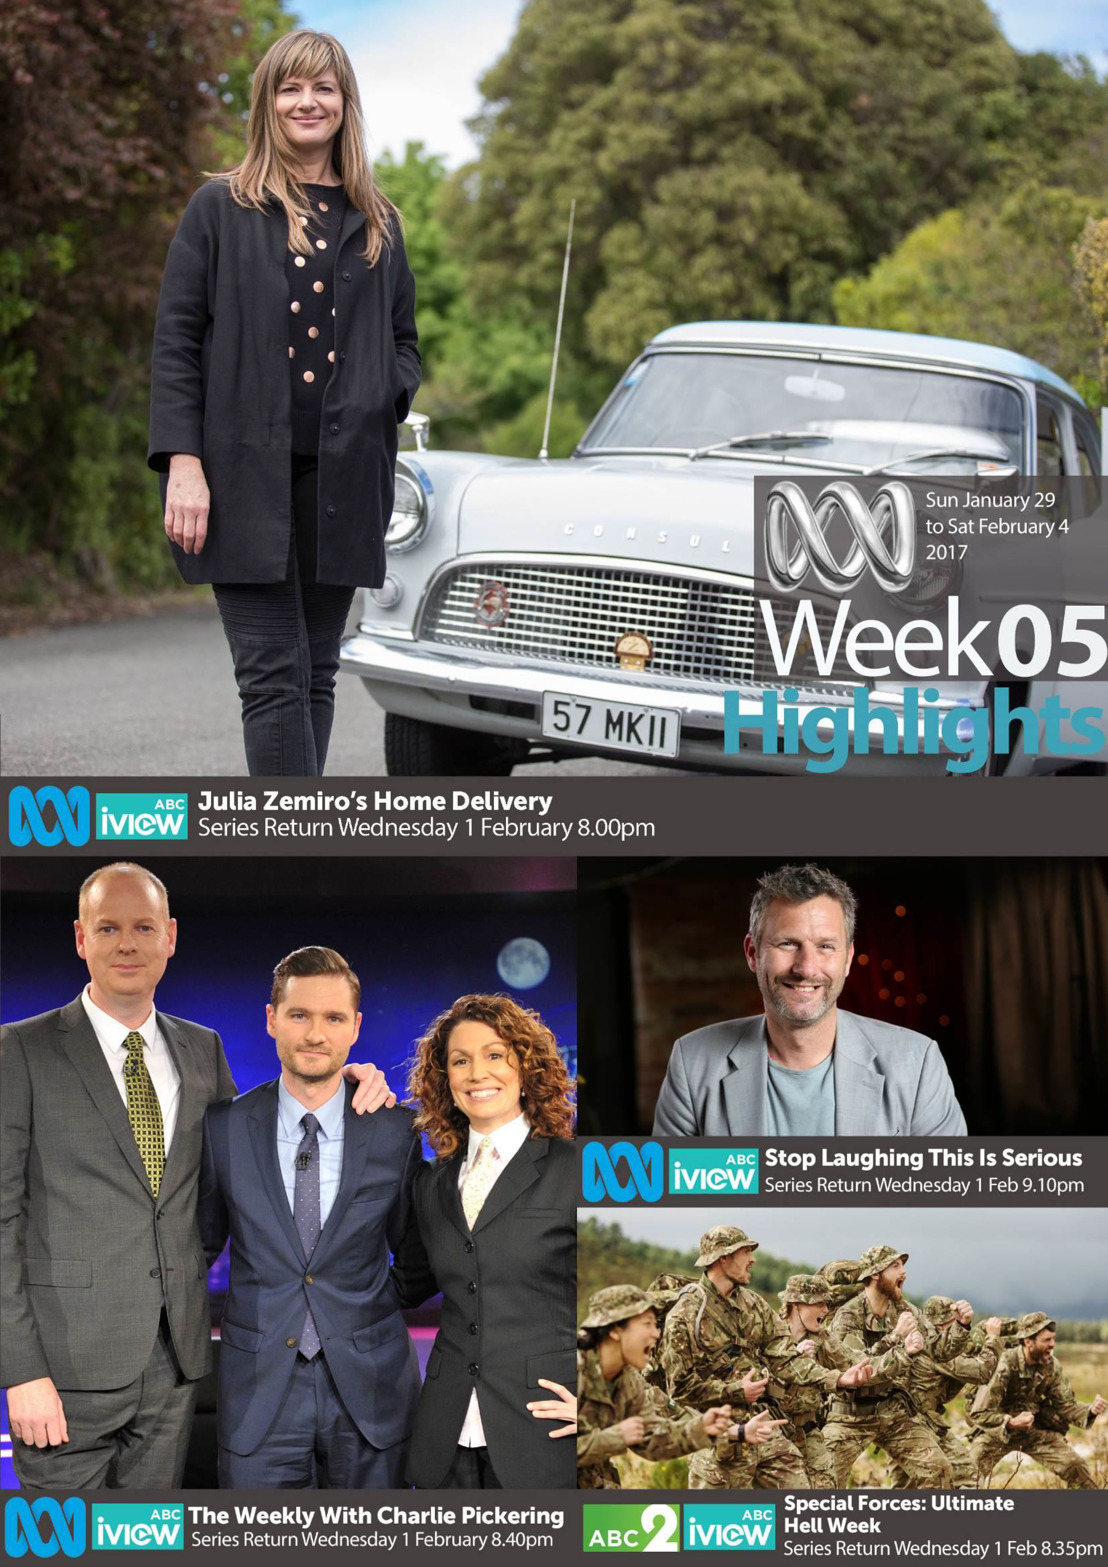 ABC Program Highlights - Week 5